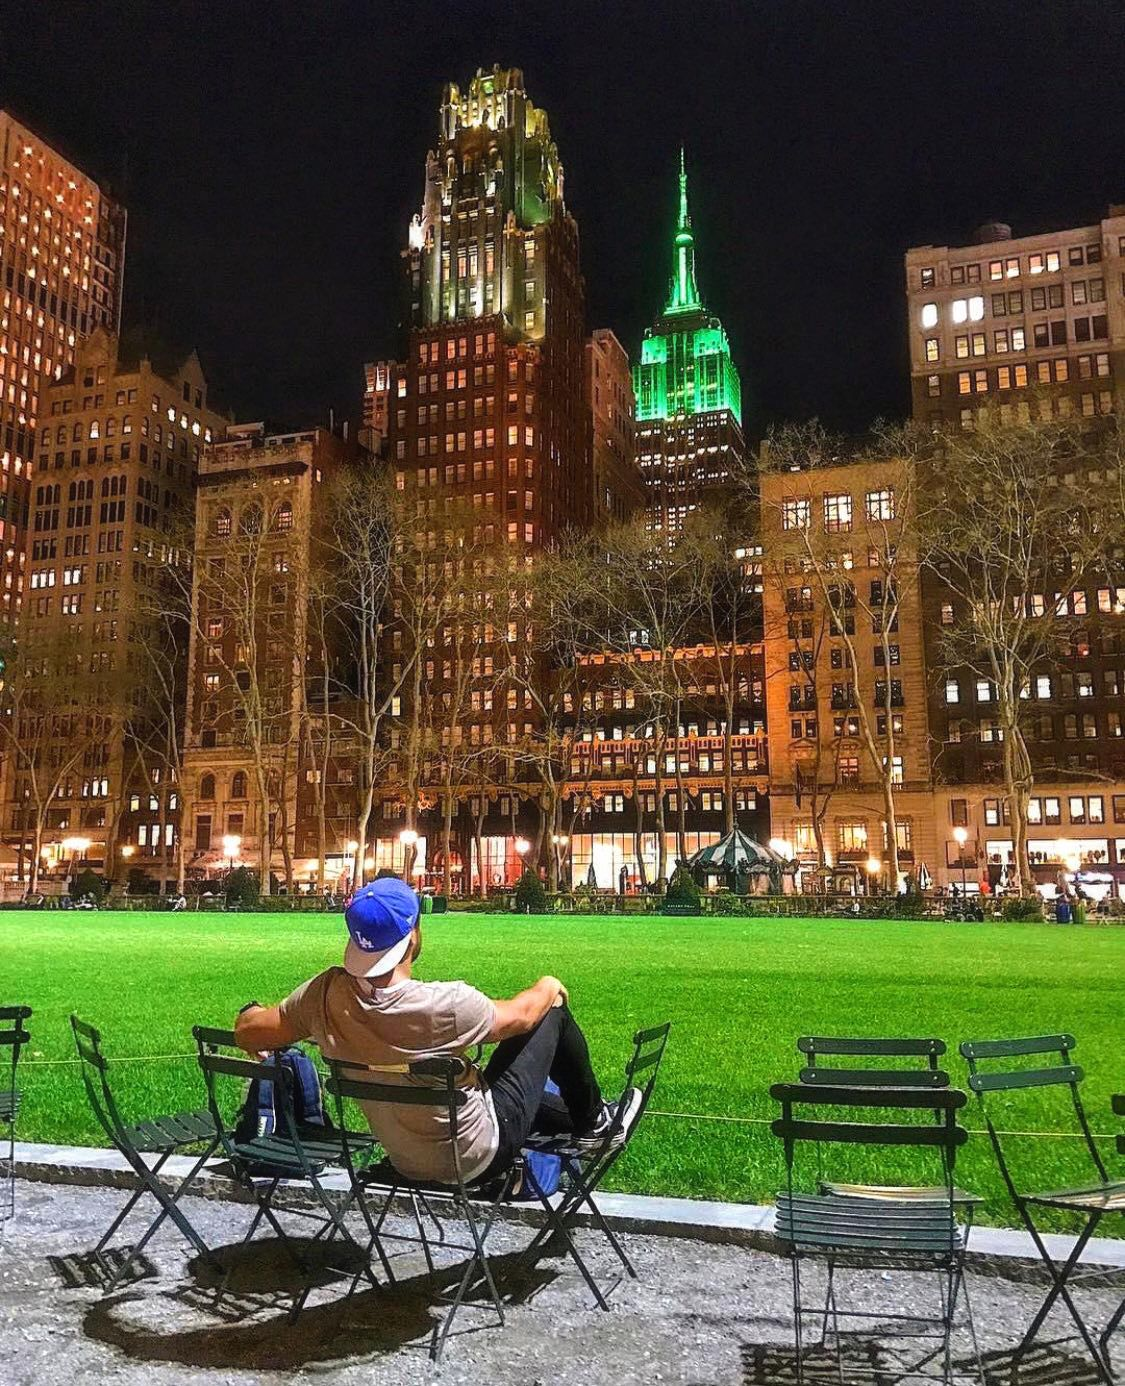 chilling out in bryant park admiring an iconic landmark and the green atmosphere